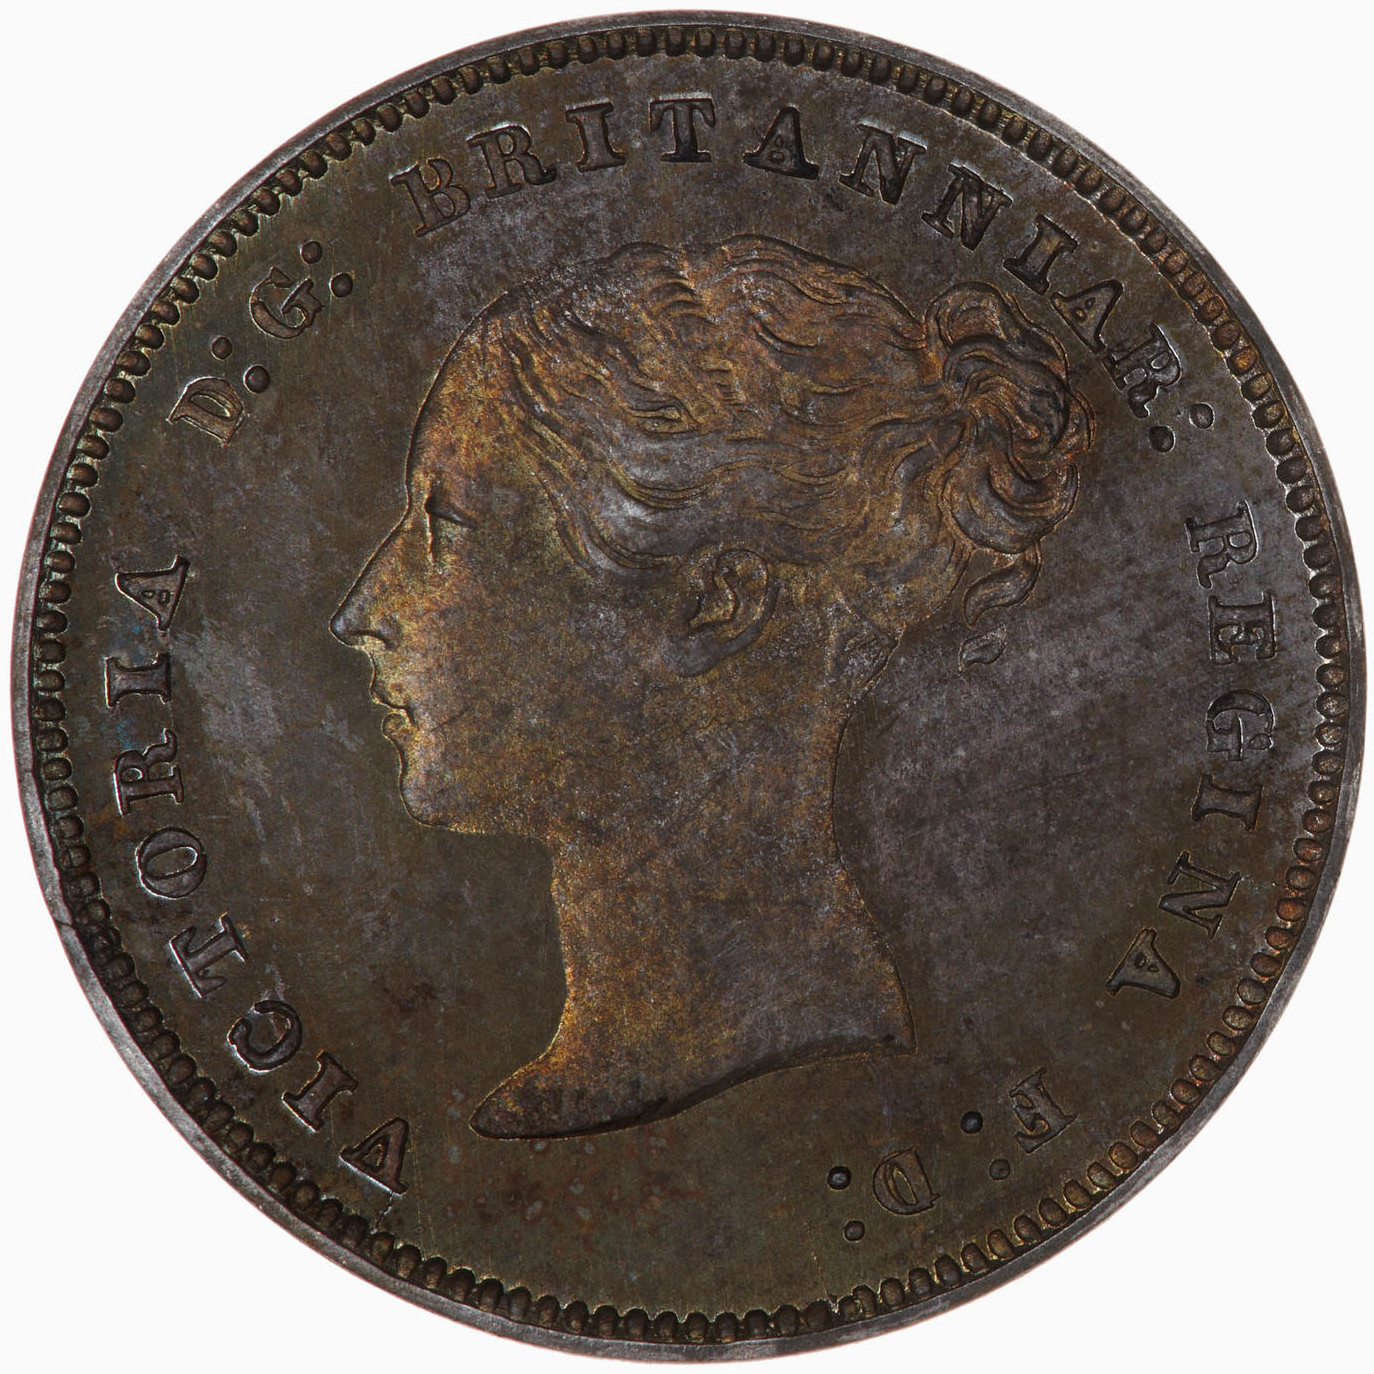 Fourpence 1877 (Maundy): Photo Coin - Groat (Maundy), Queen Victoria, Great Britain, 1877